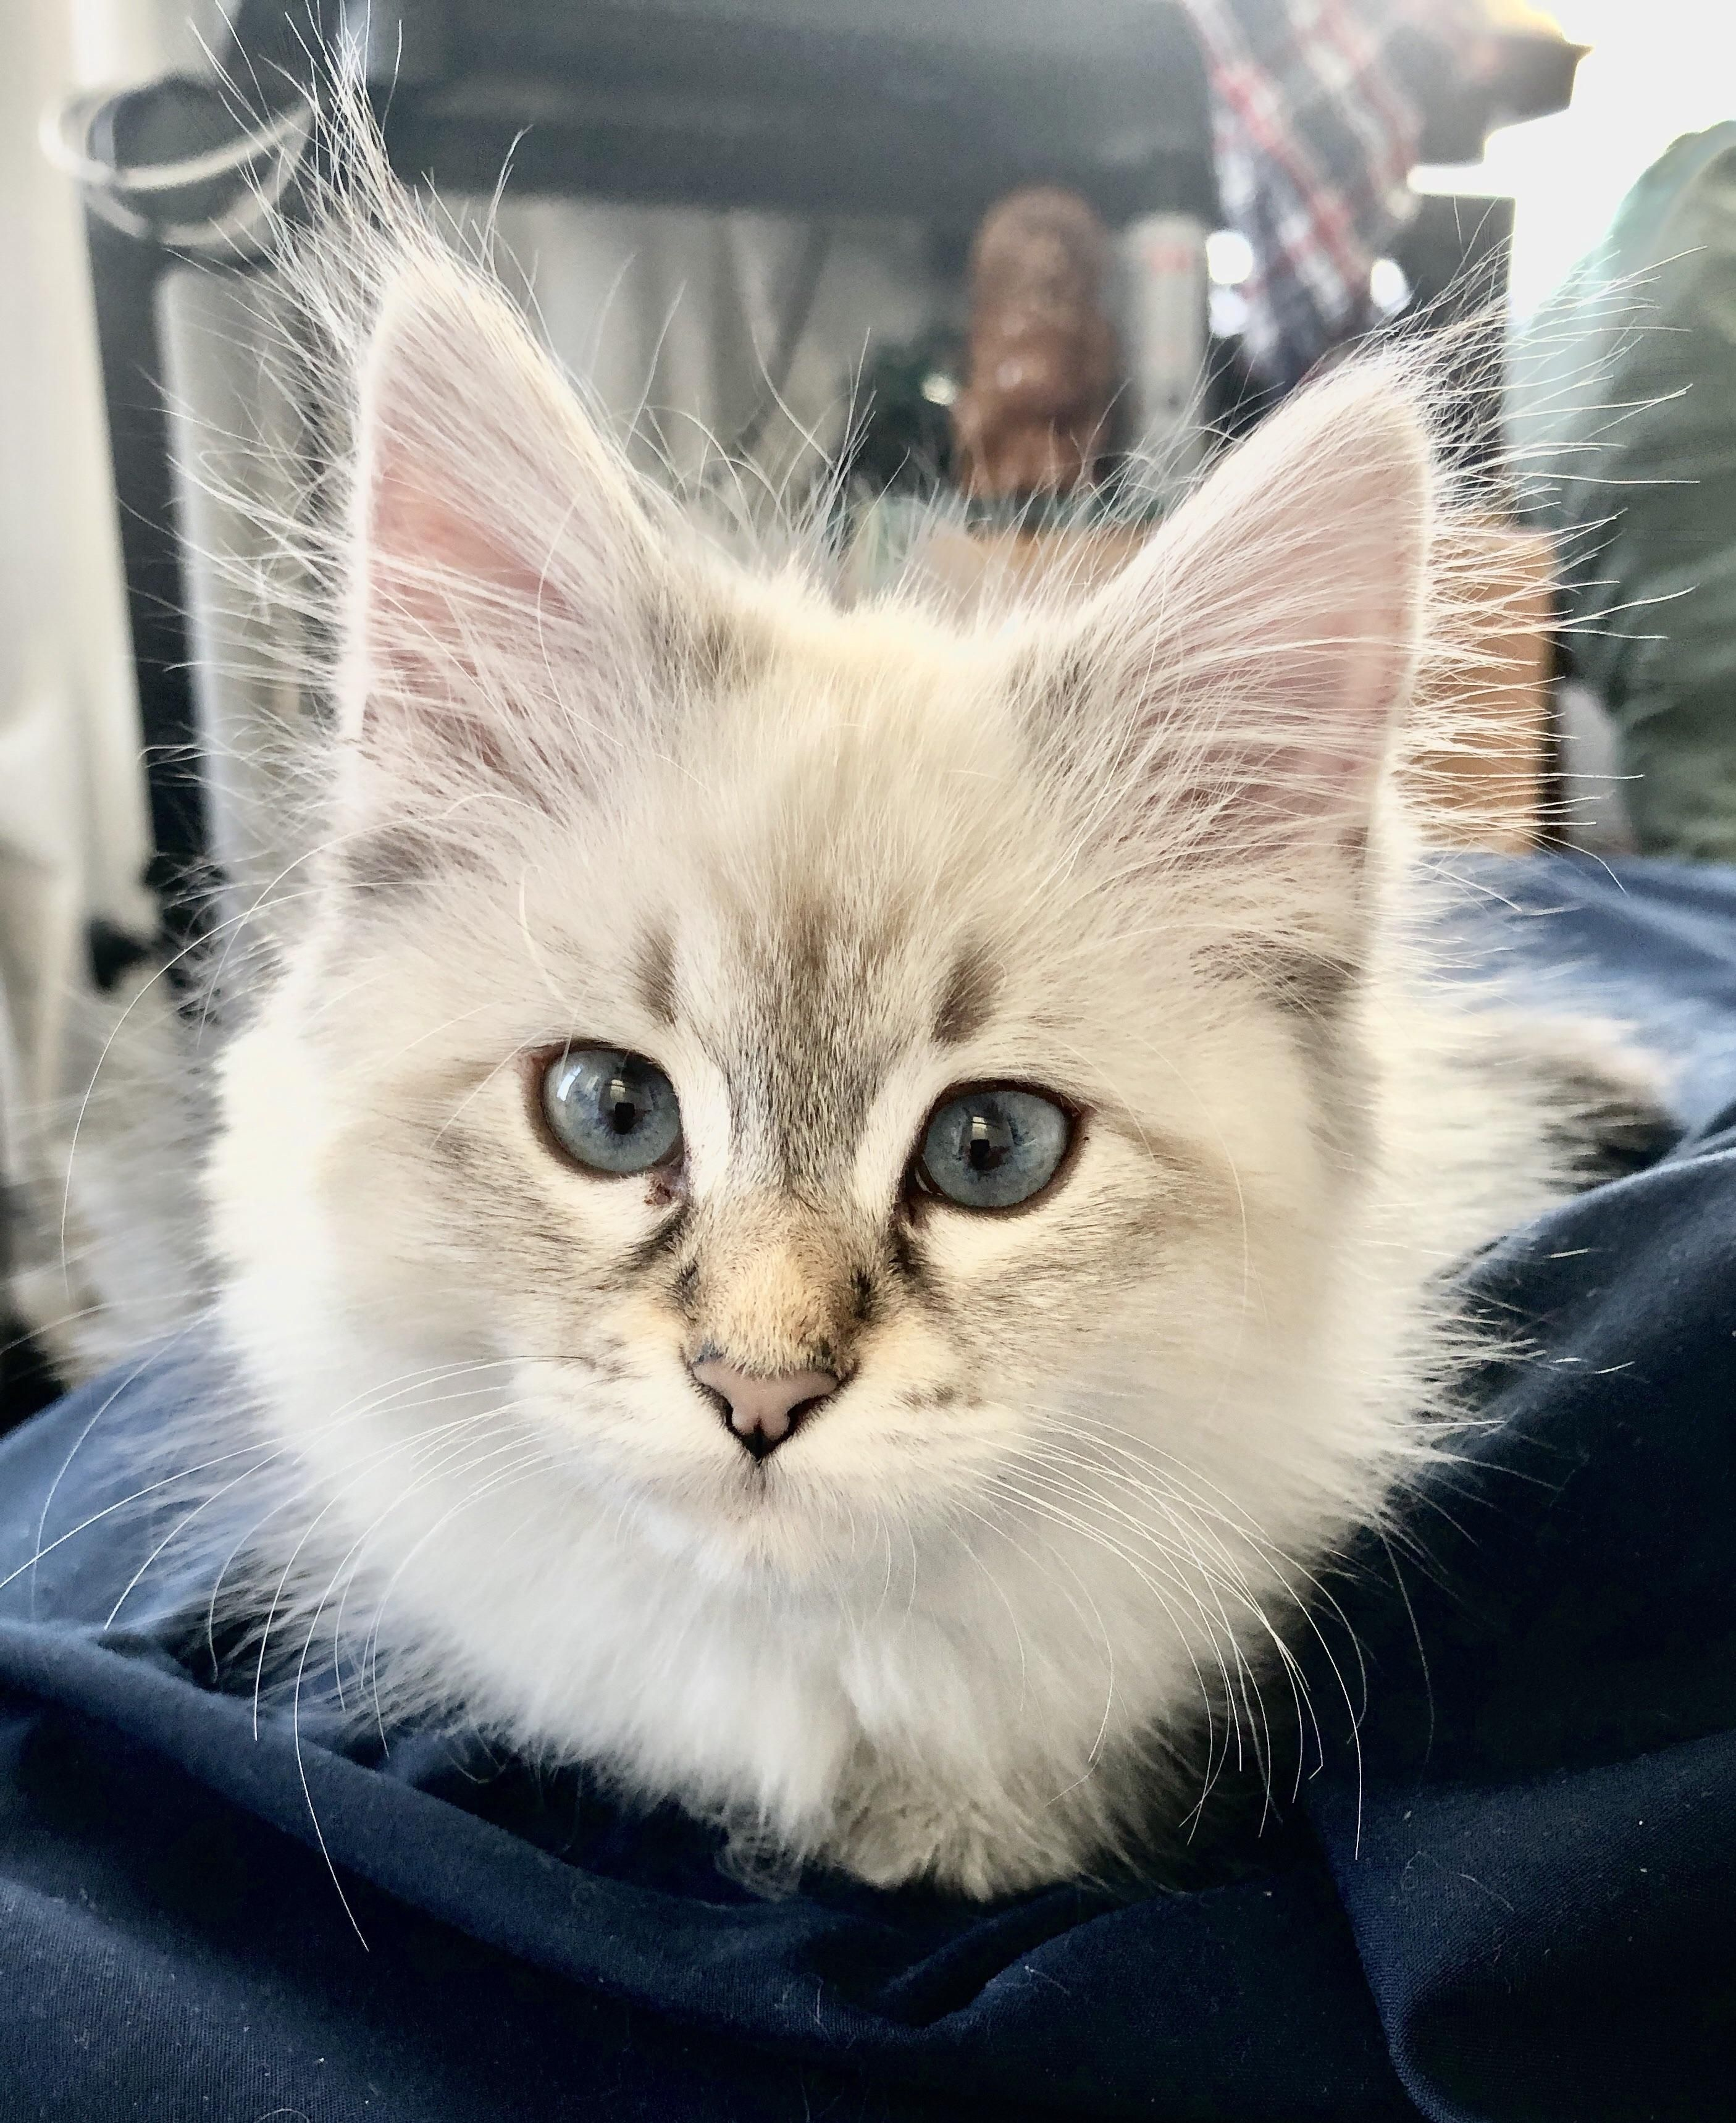 Reddit Meet Blue The Kitten Id Never Thought Wed Get Because Were Allergic Turns Out Siberians Really Are Hypoallergenic Kittens Allergic To Cats Cats Knead